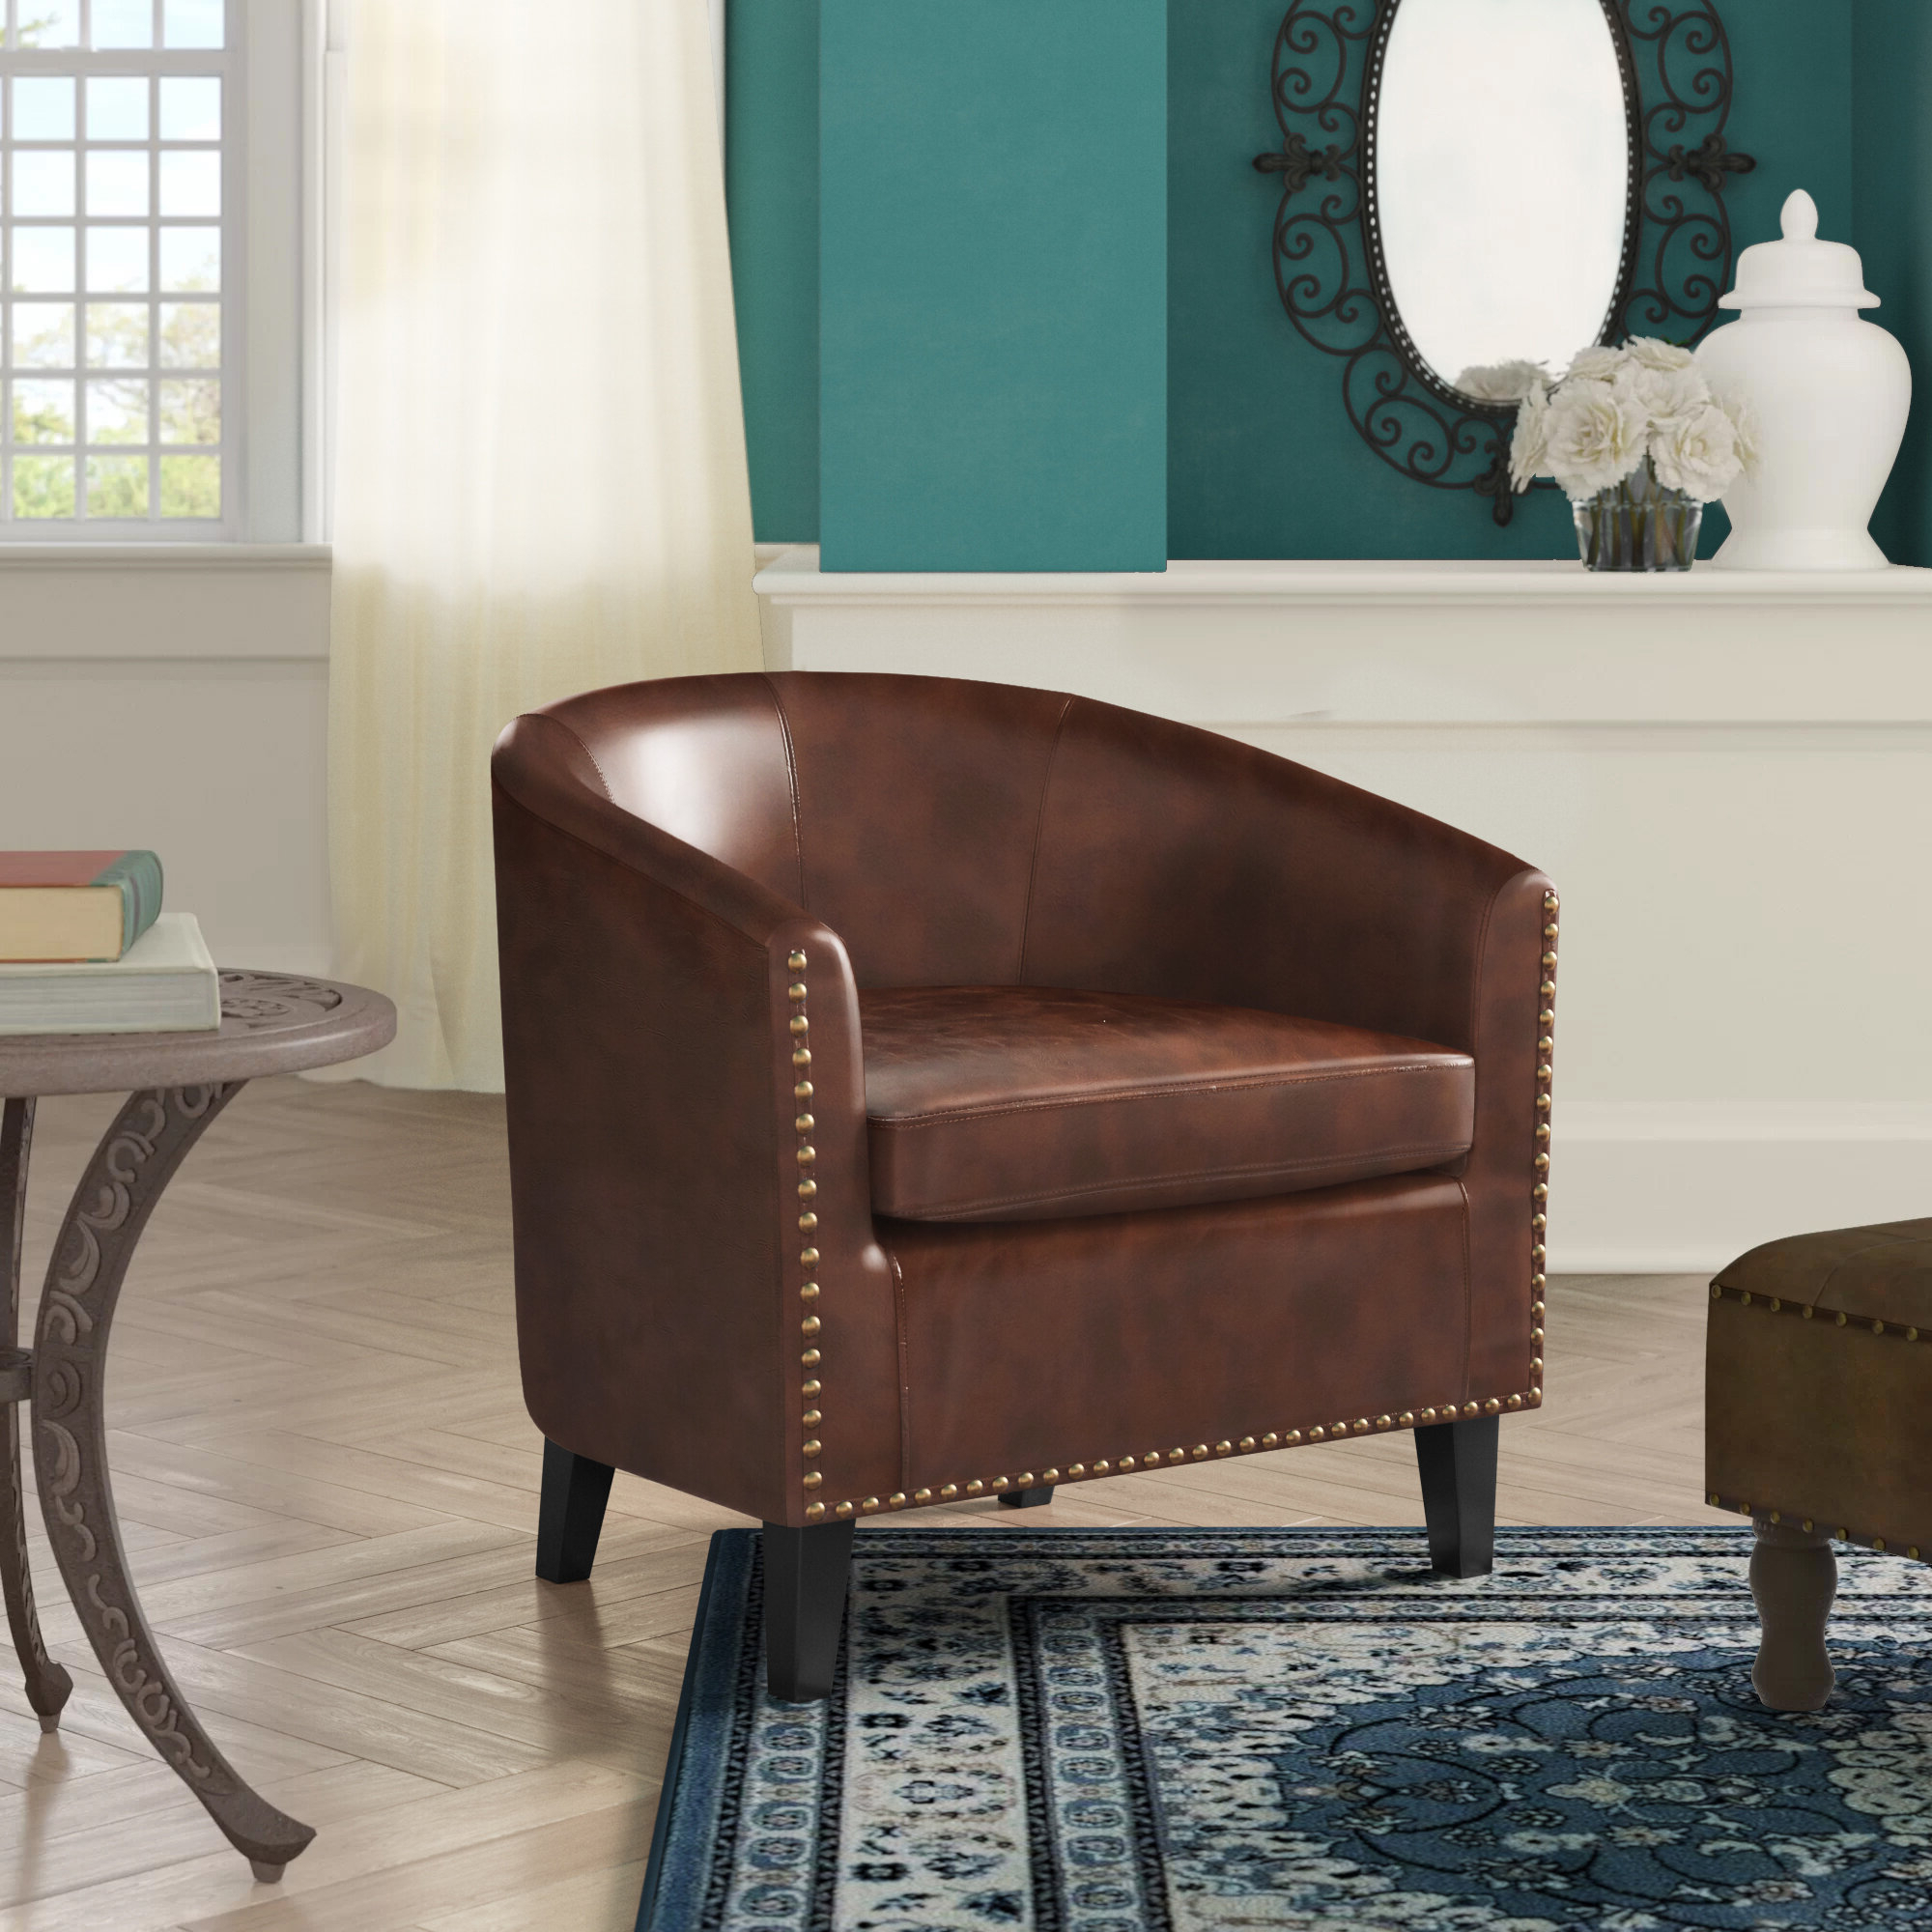 Coomer Faux Leather Barrel Chairs Pertaining To Well Known Brown Faux Leather Accent Chairs You'll Love In (View 11 of 20)